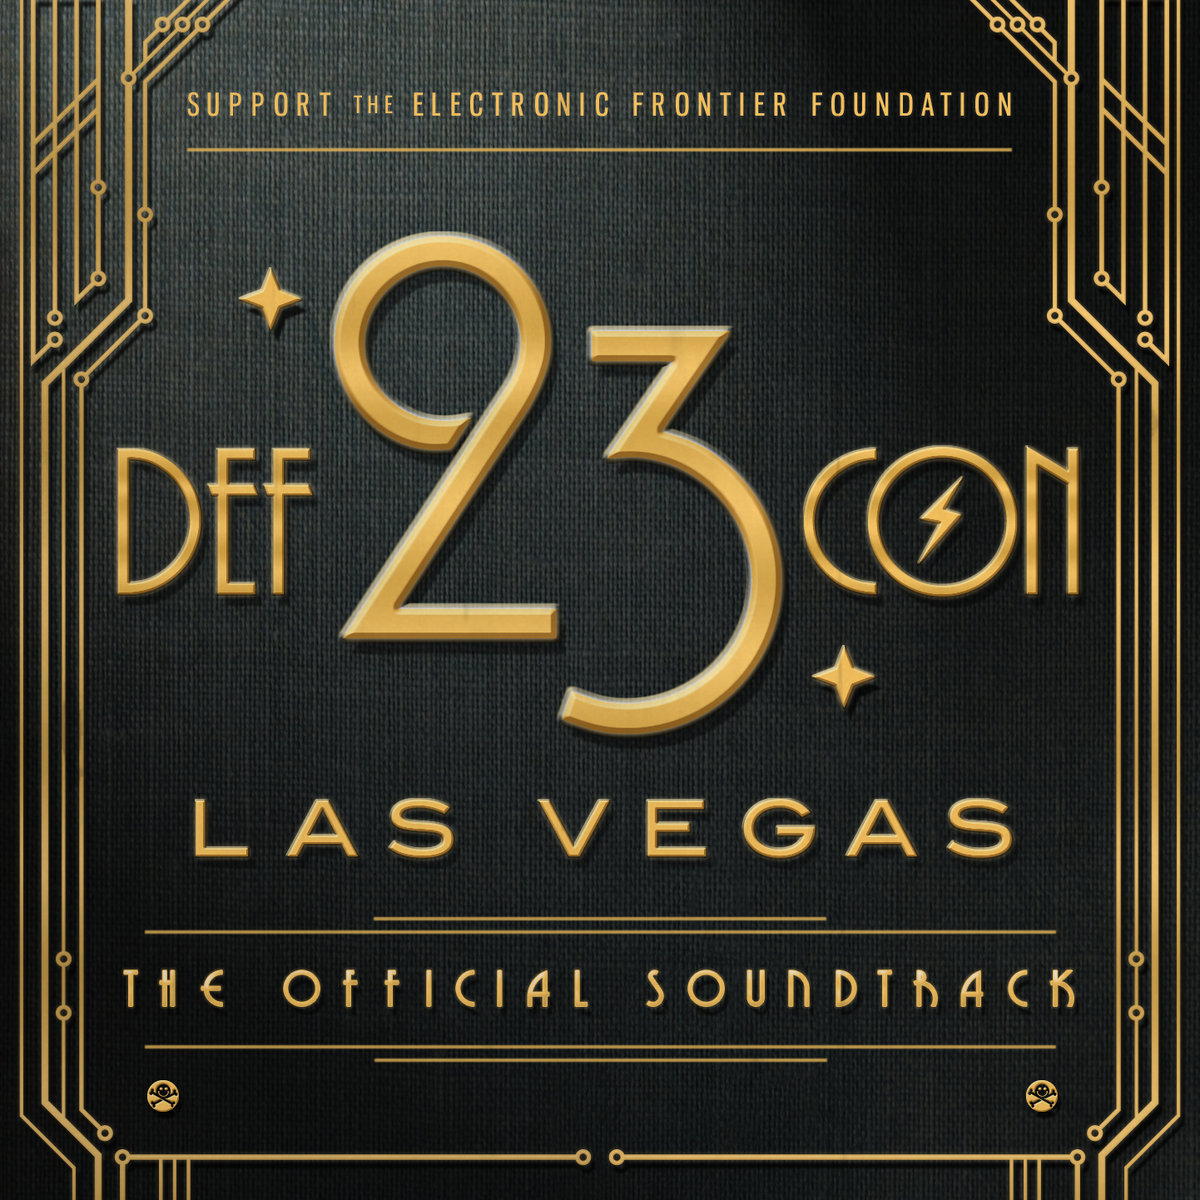 Morillo - Elephant @ 'DEF CON 23: The Official Soundtrack' album (bass, charity)